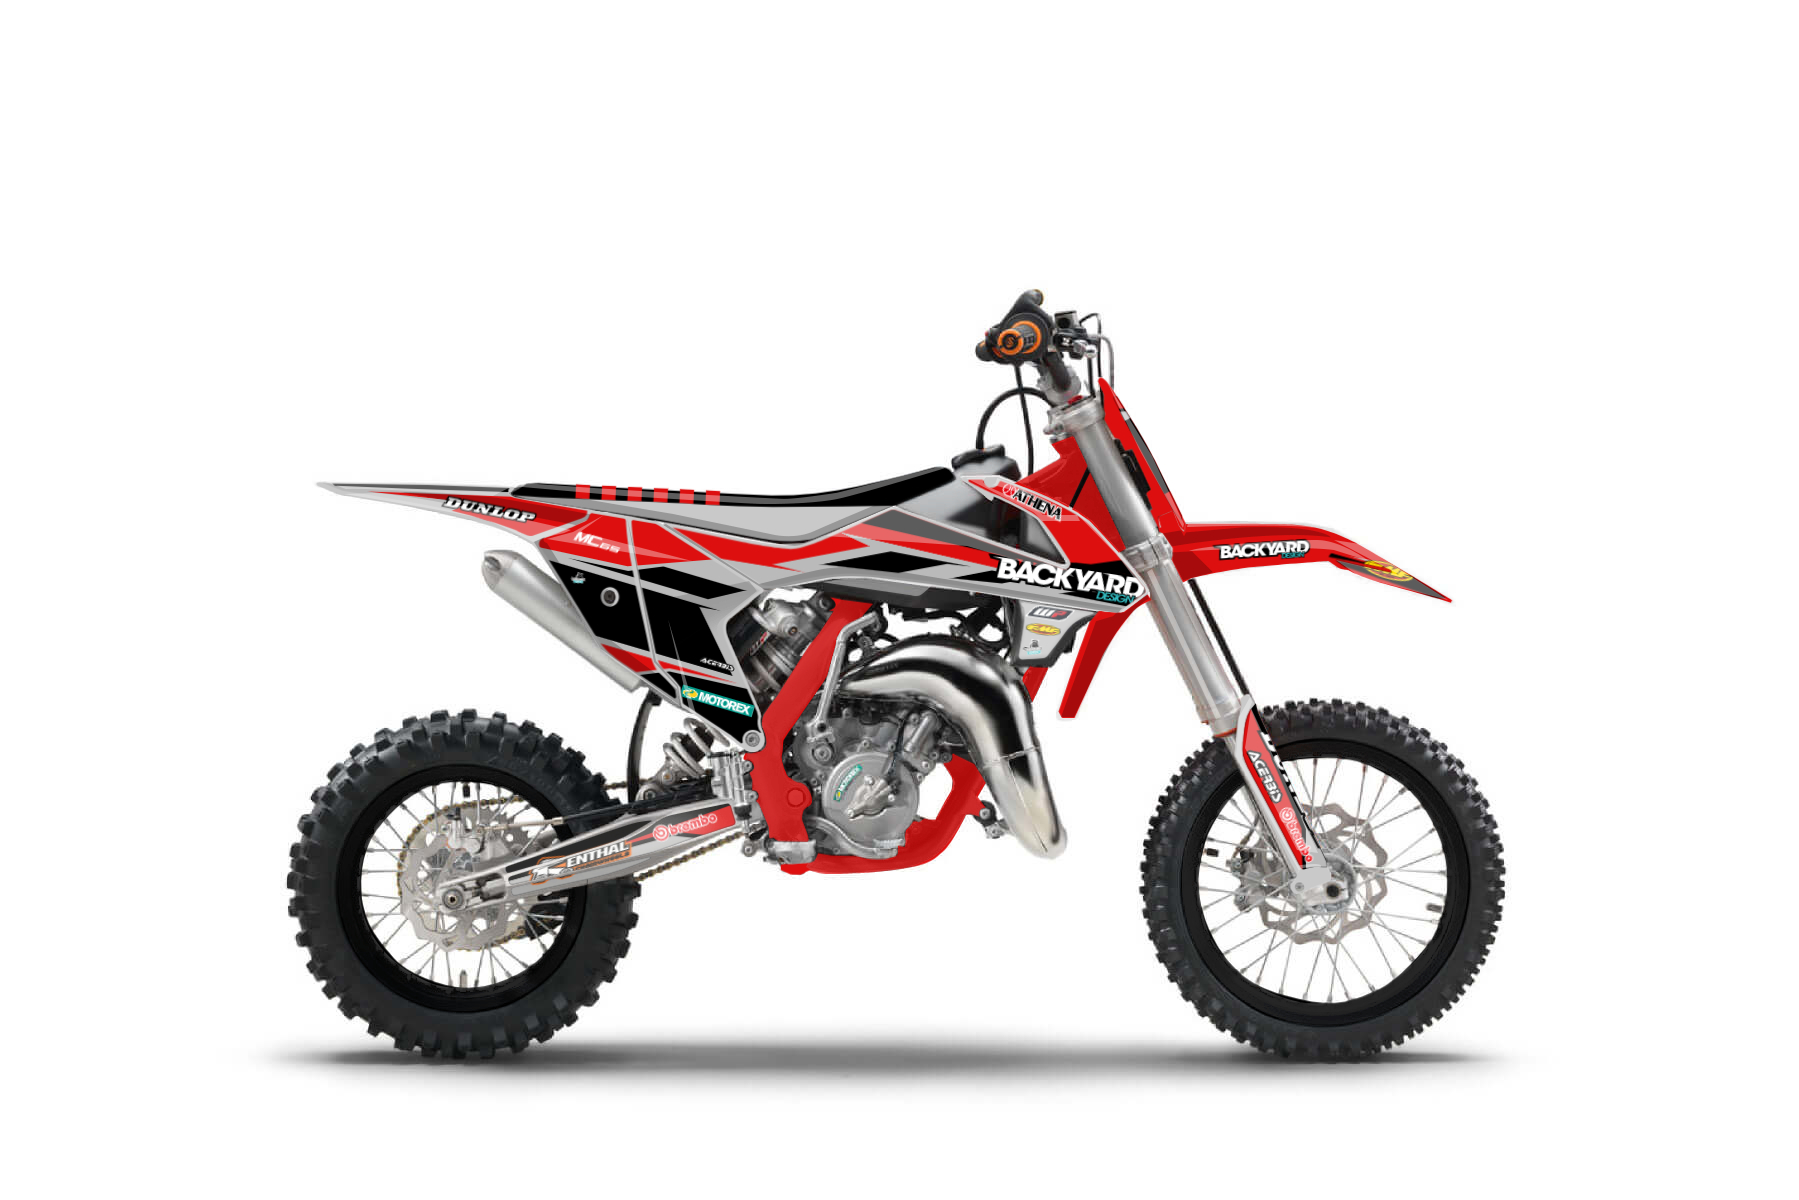 GasGas MC65 MX Graphic Kits  The MC 65 is the perfect bike for beginners. If you want to earn your first positive results on the track this GasGas is the perfect companion for you.